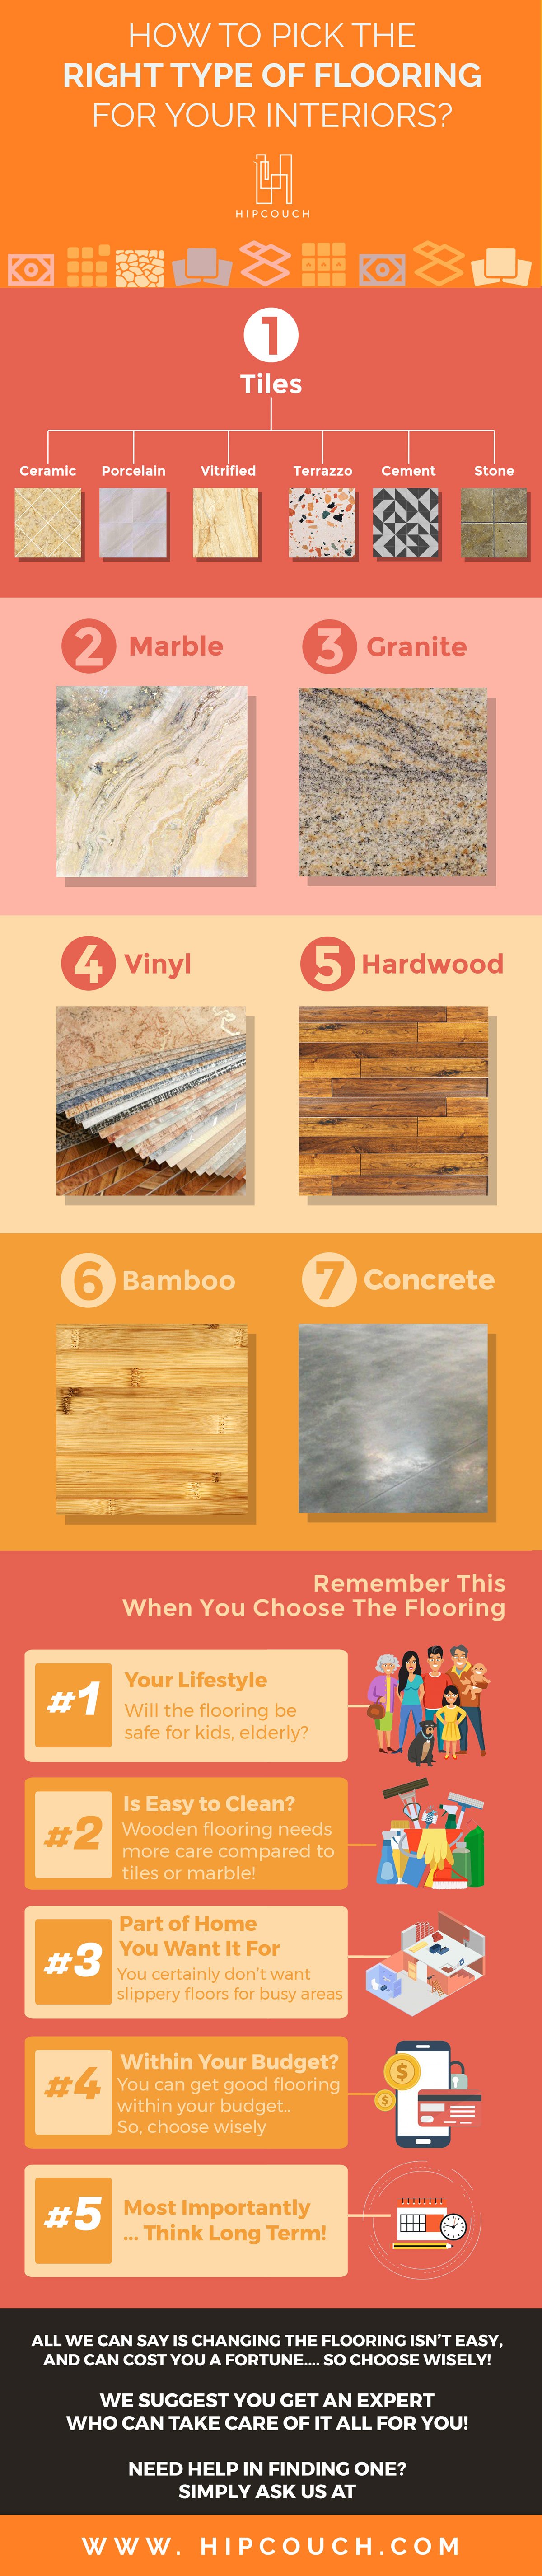 How To Pick The Right Flooring For Your Interiors?